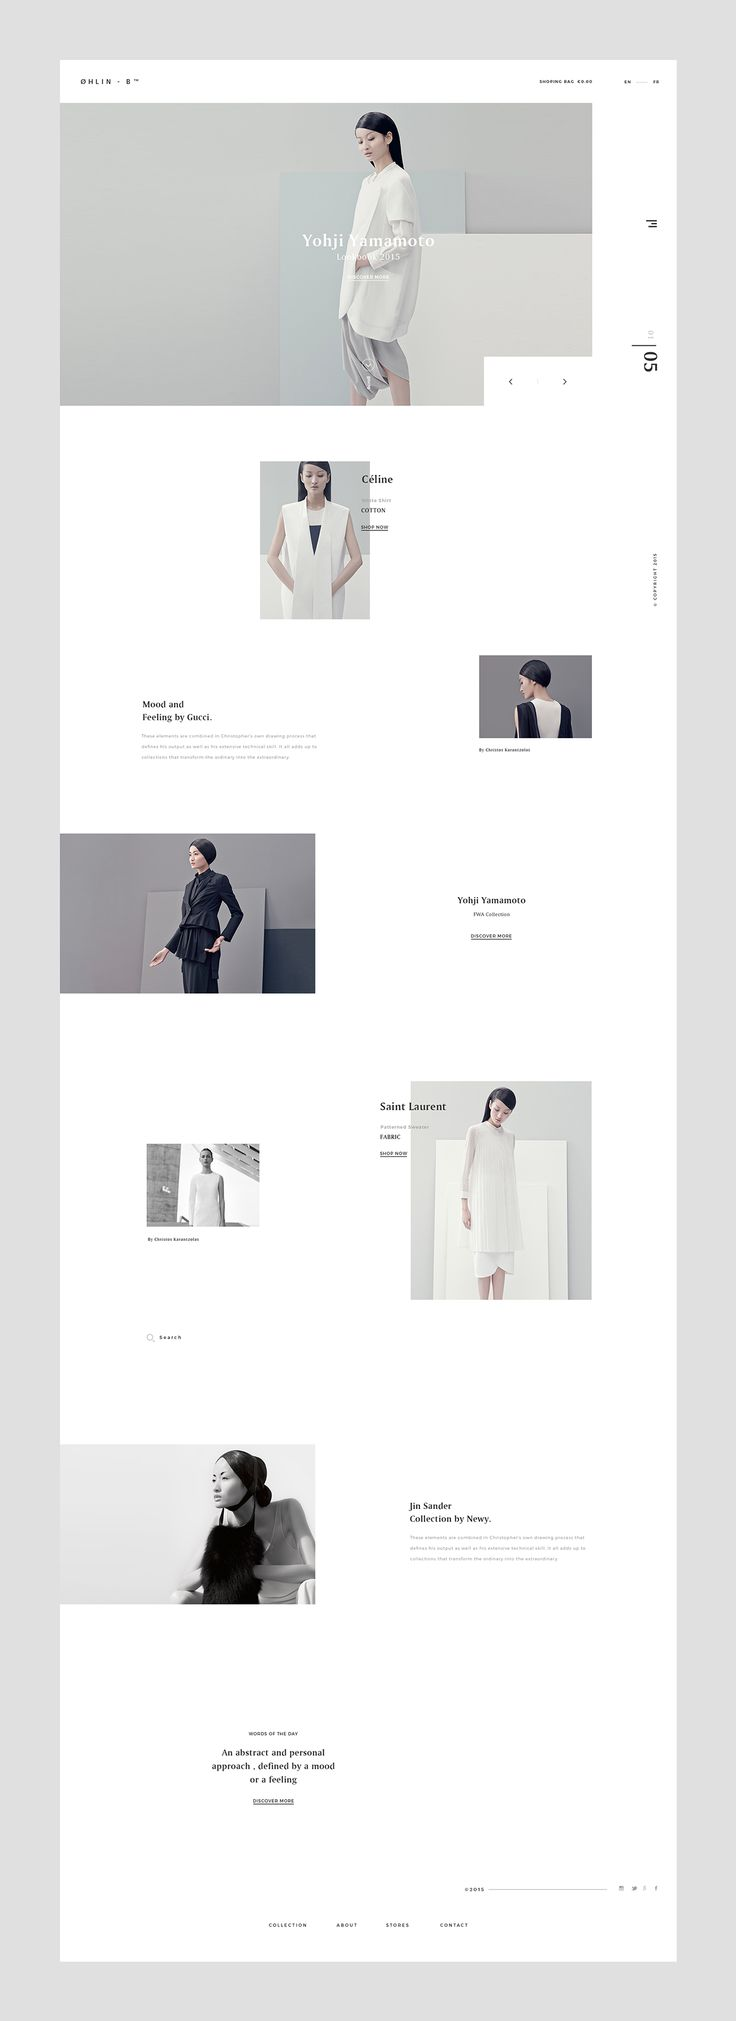 ØHLIN - B on Behance #fashion #web #design #layout